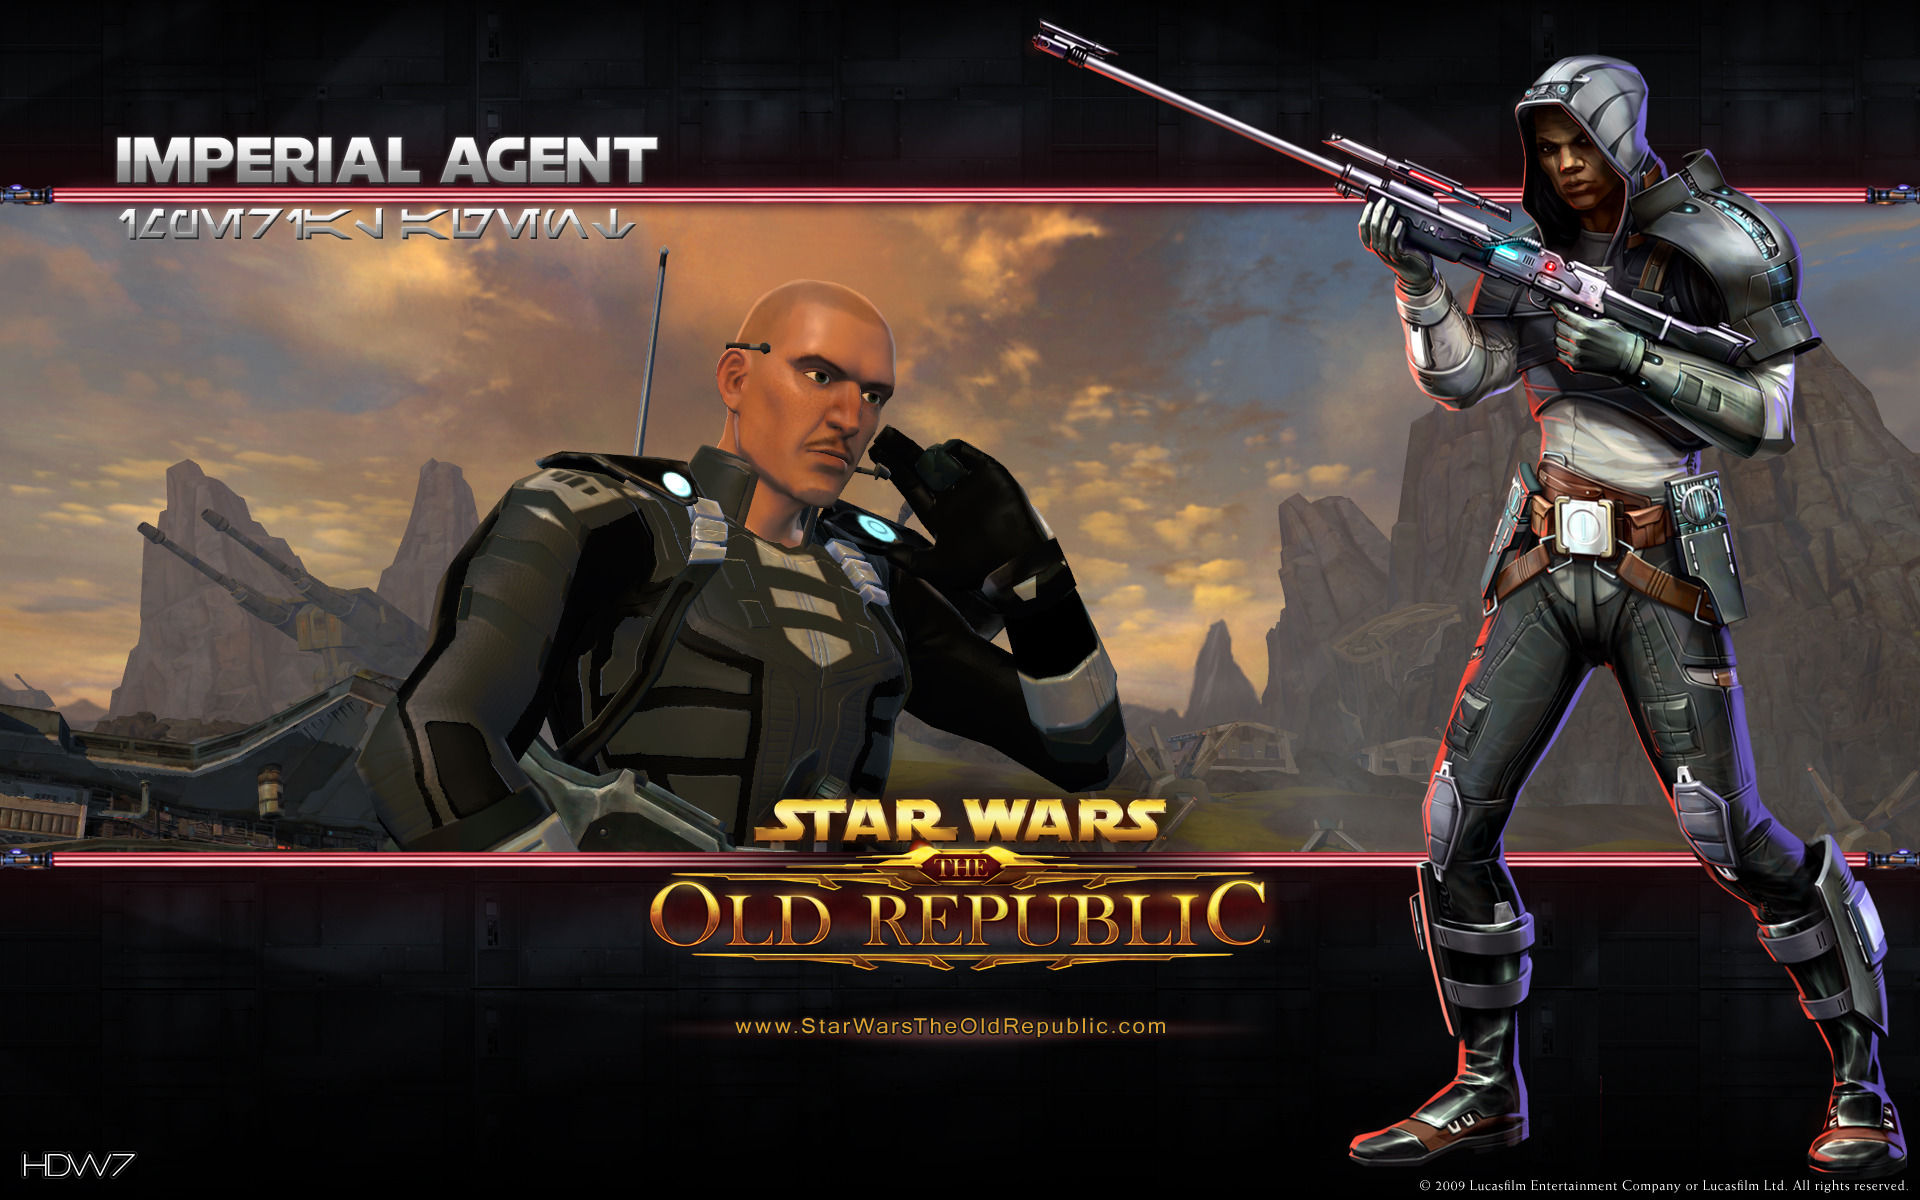 Star Wars The Old Republic Imperial Agent Widescreen Wallpaper Hd Wallpaper Gallery 325